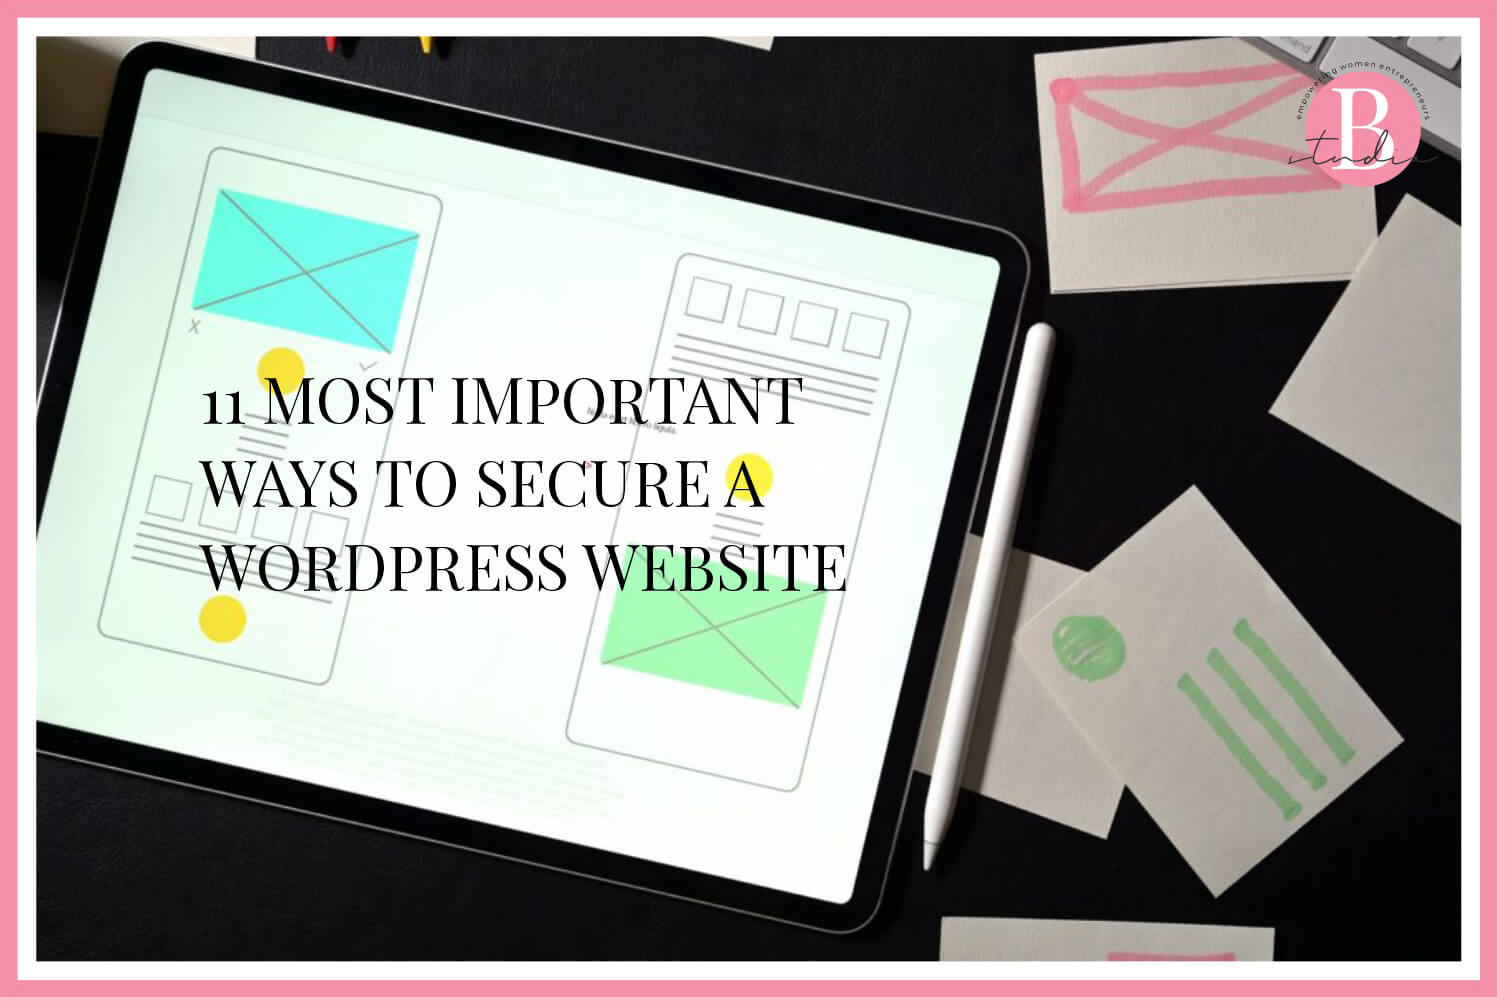 11 Most Important Ways to Secure a WordPress Website img